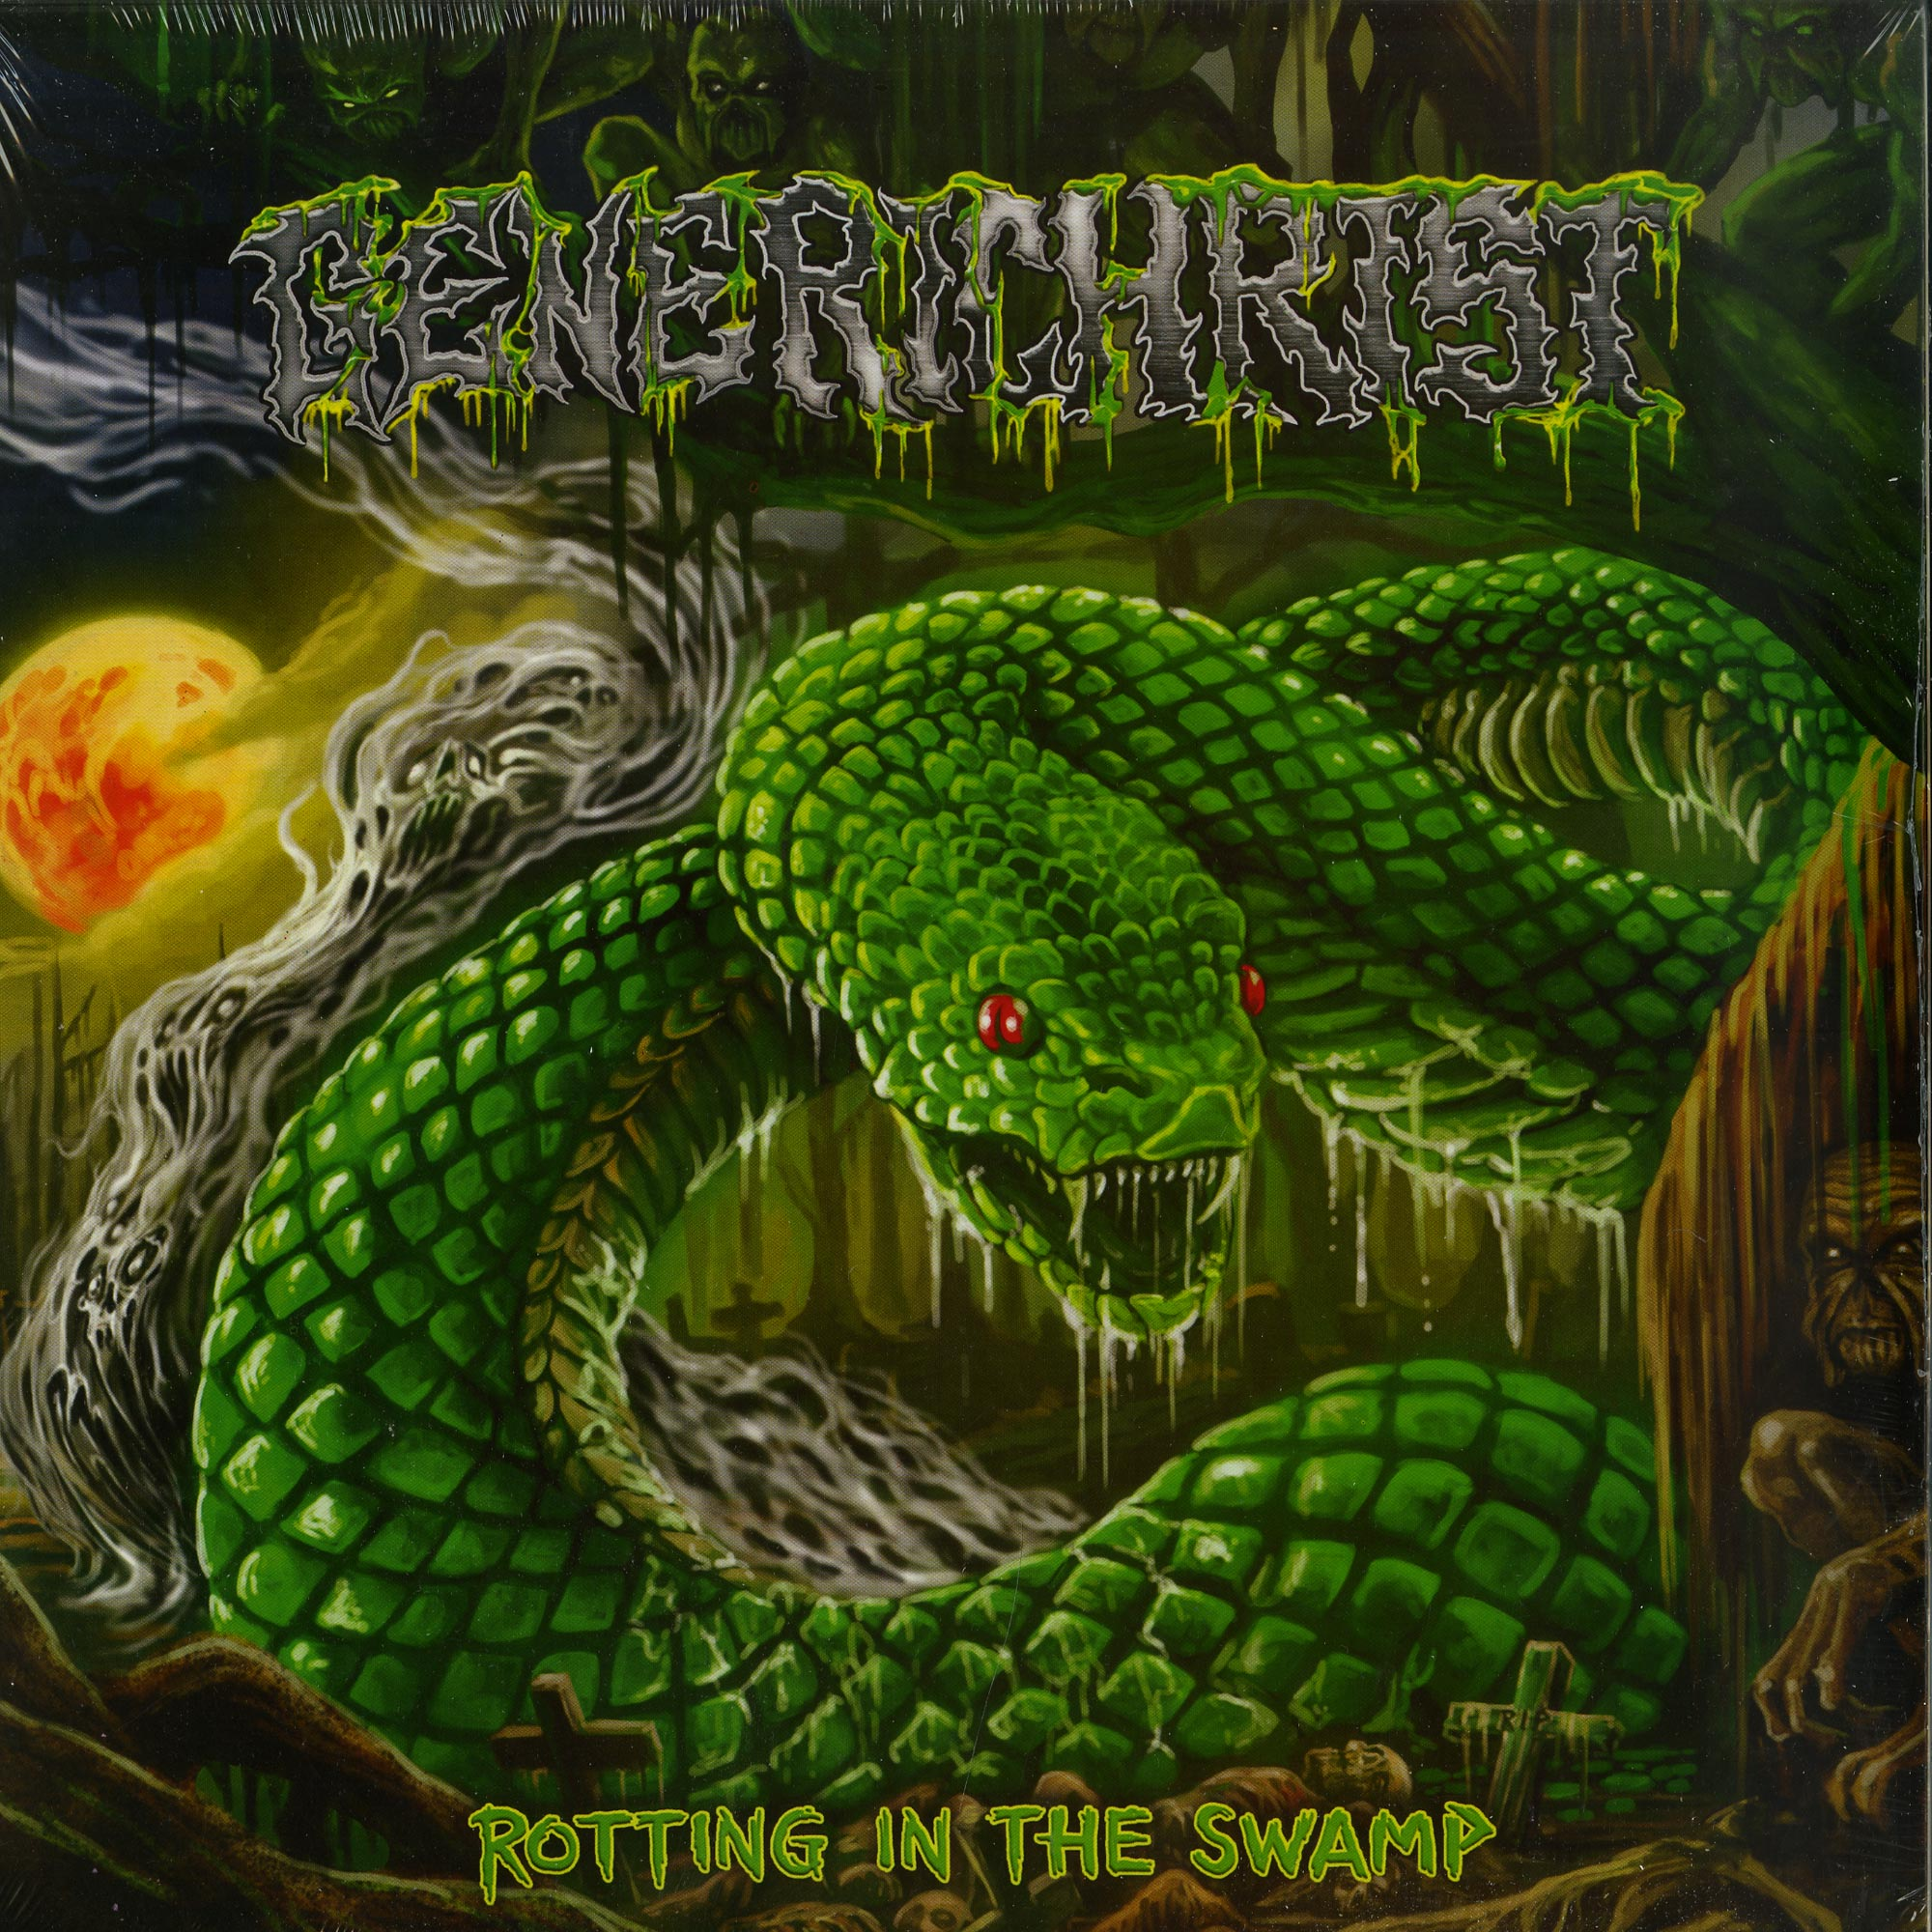 Generichrist - ROTTING IN THE SWAMP